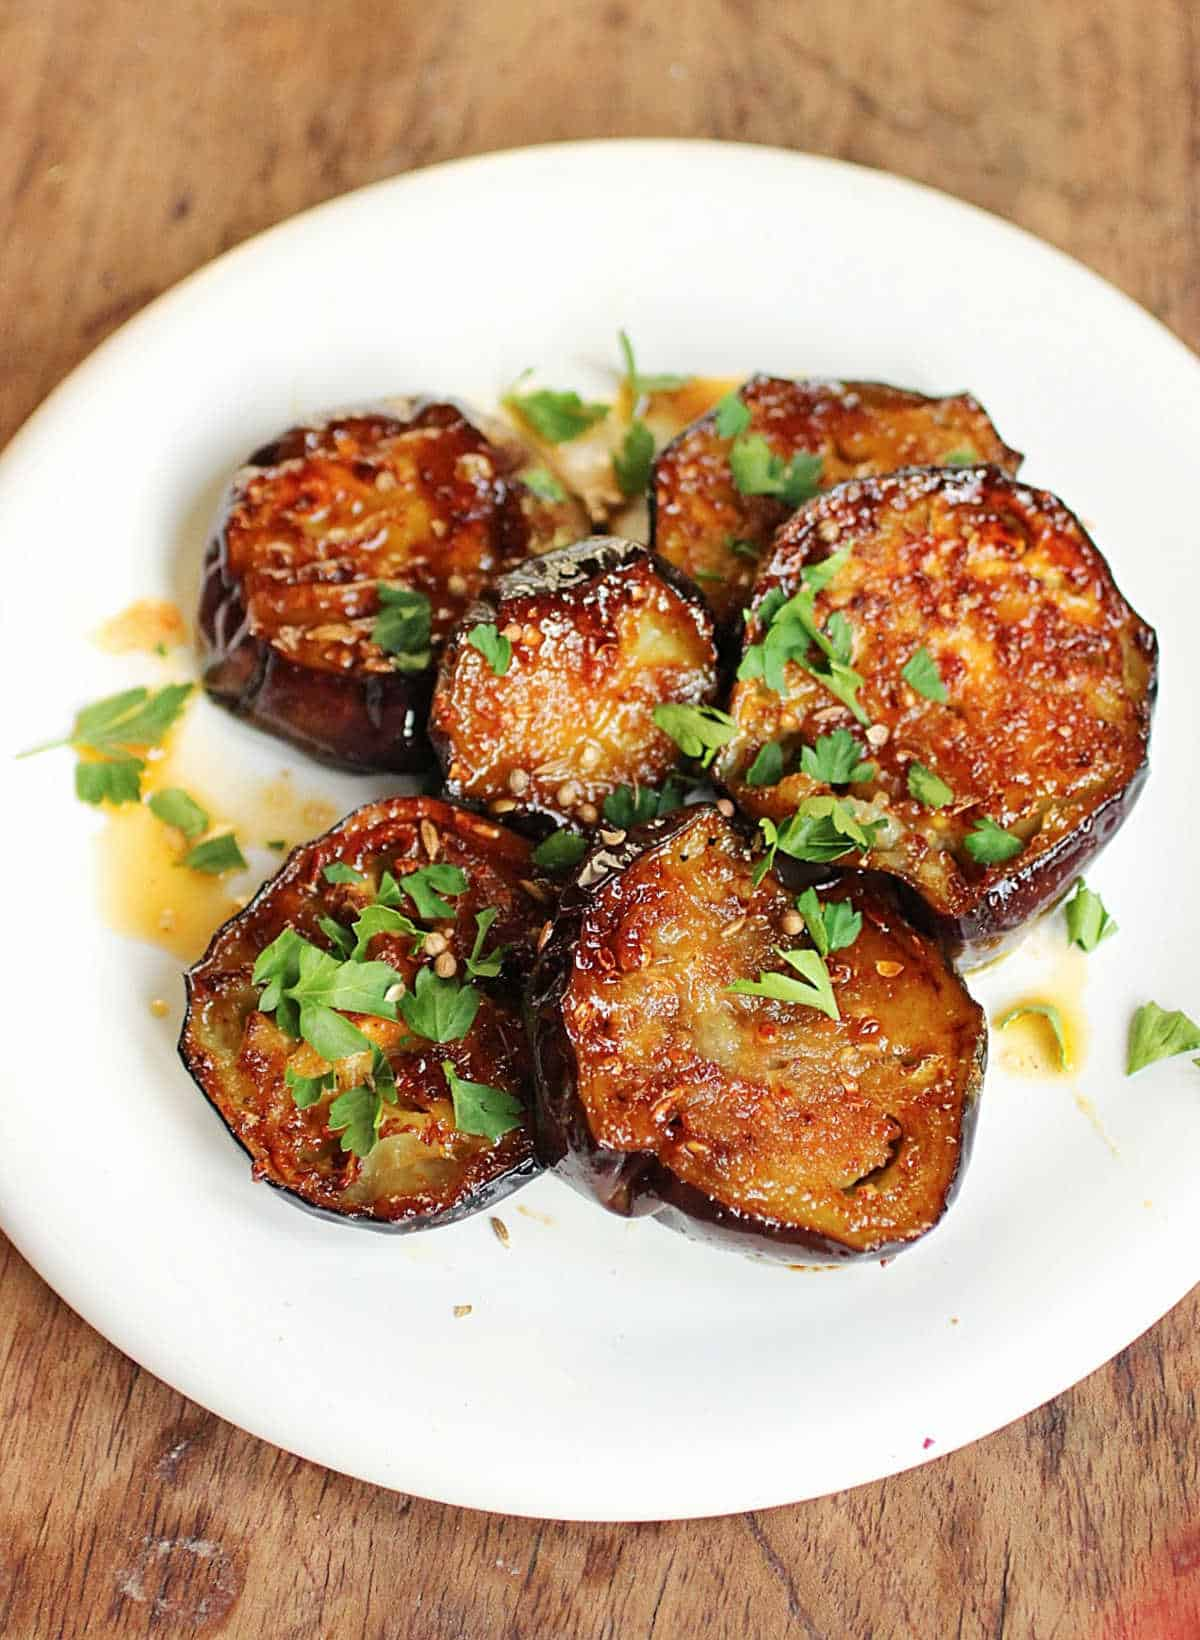 Eggplant rounds with caramelized coating and chopped herbs on white plate, wooden table